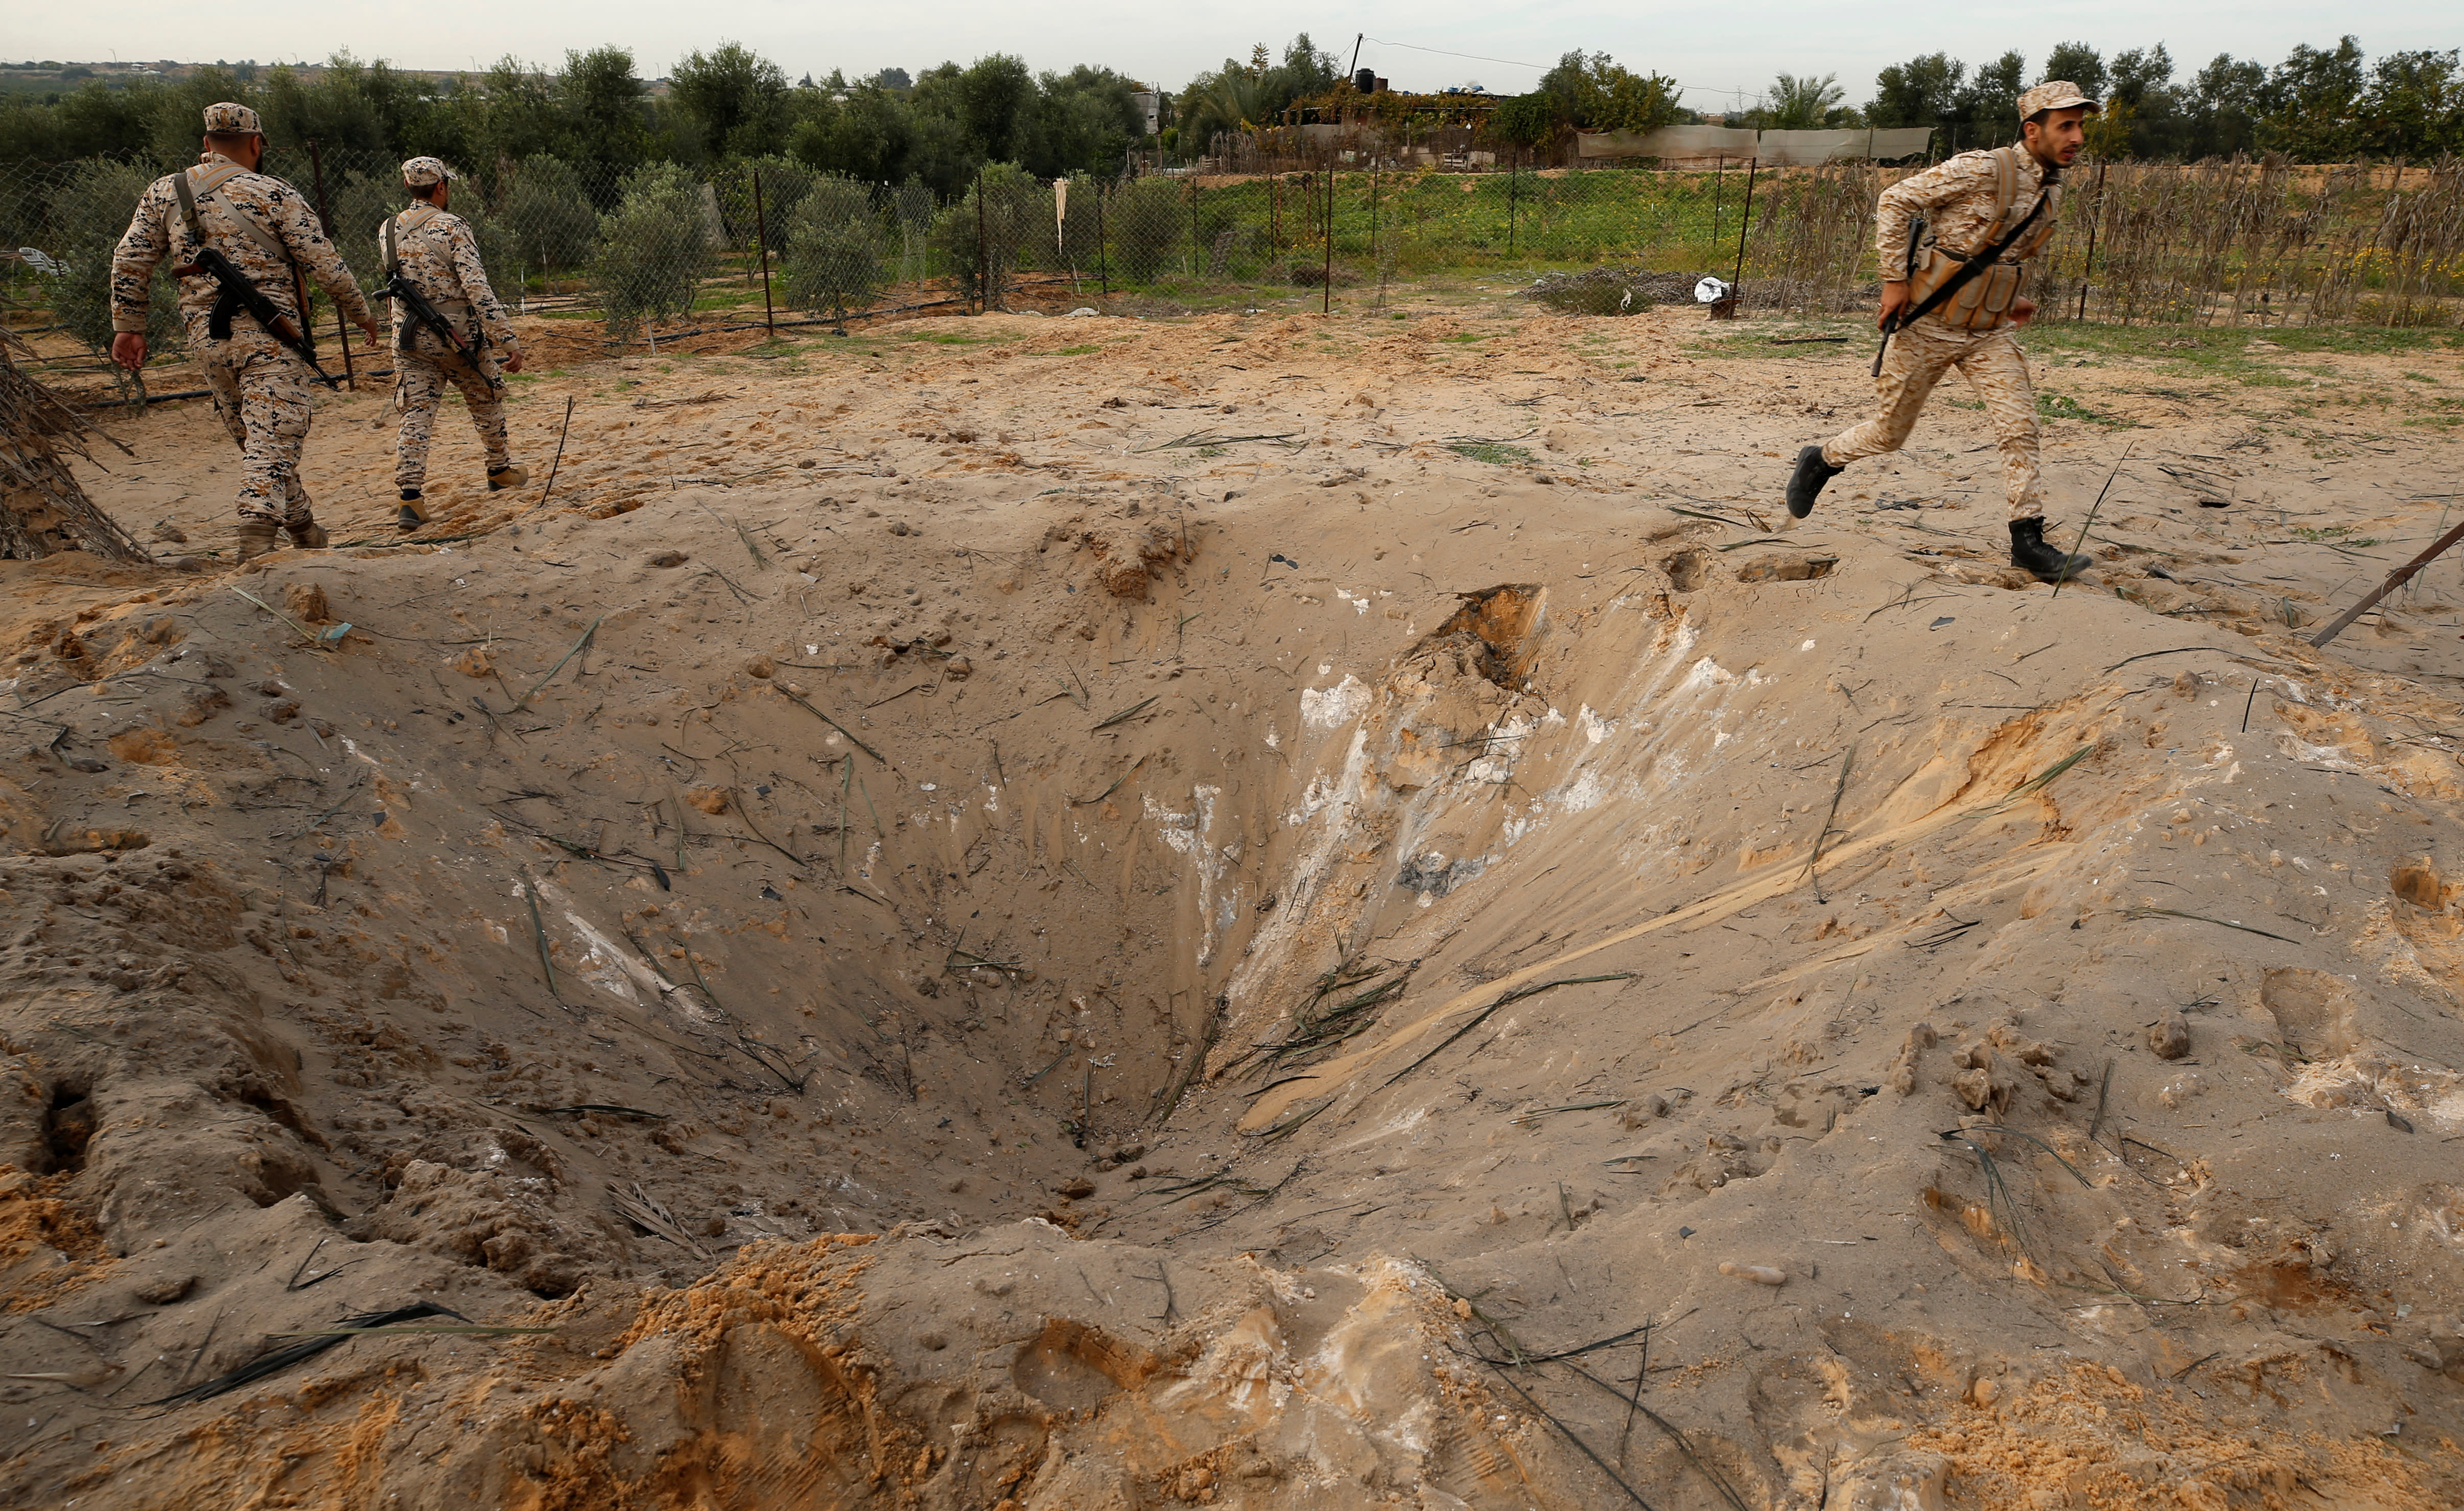 Members of Palestinian Hamas security forces survey the scene of an explosion in the northern Gaza Strip